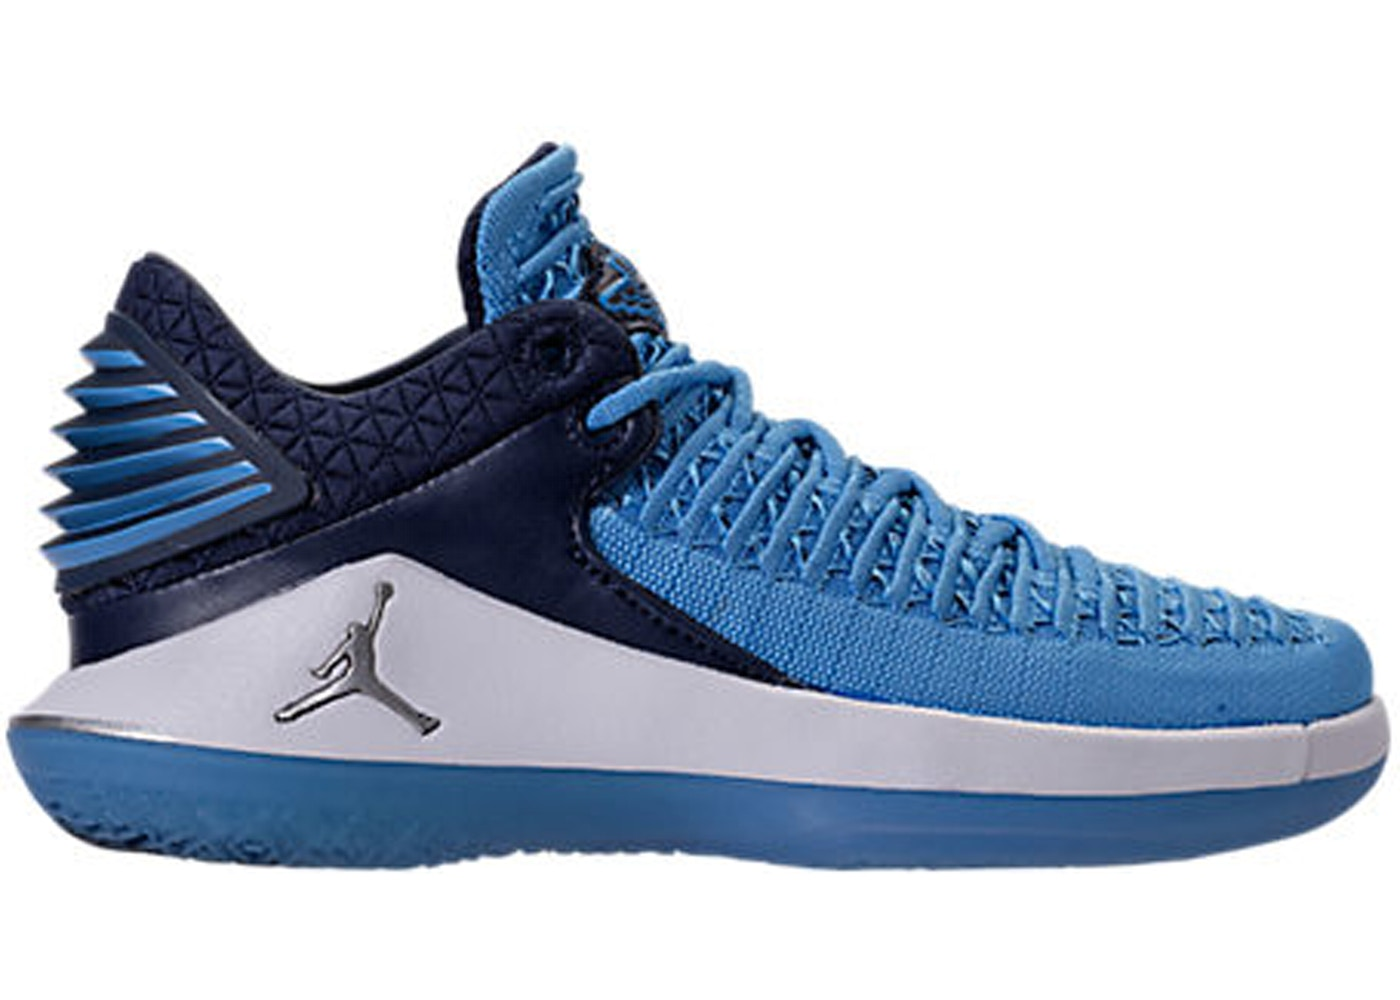 new arrivals 6ab75 00889 Jordan XXXII Low UNC Win Like 82 (GS)